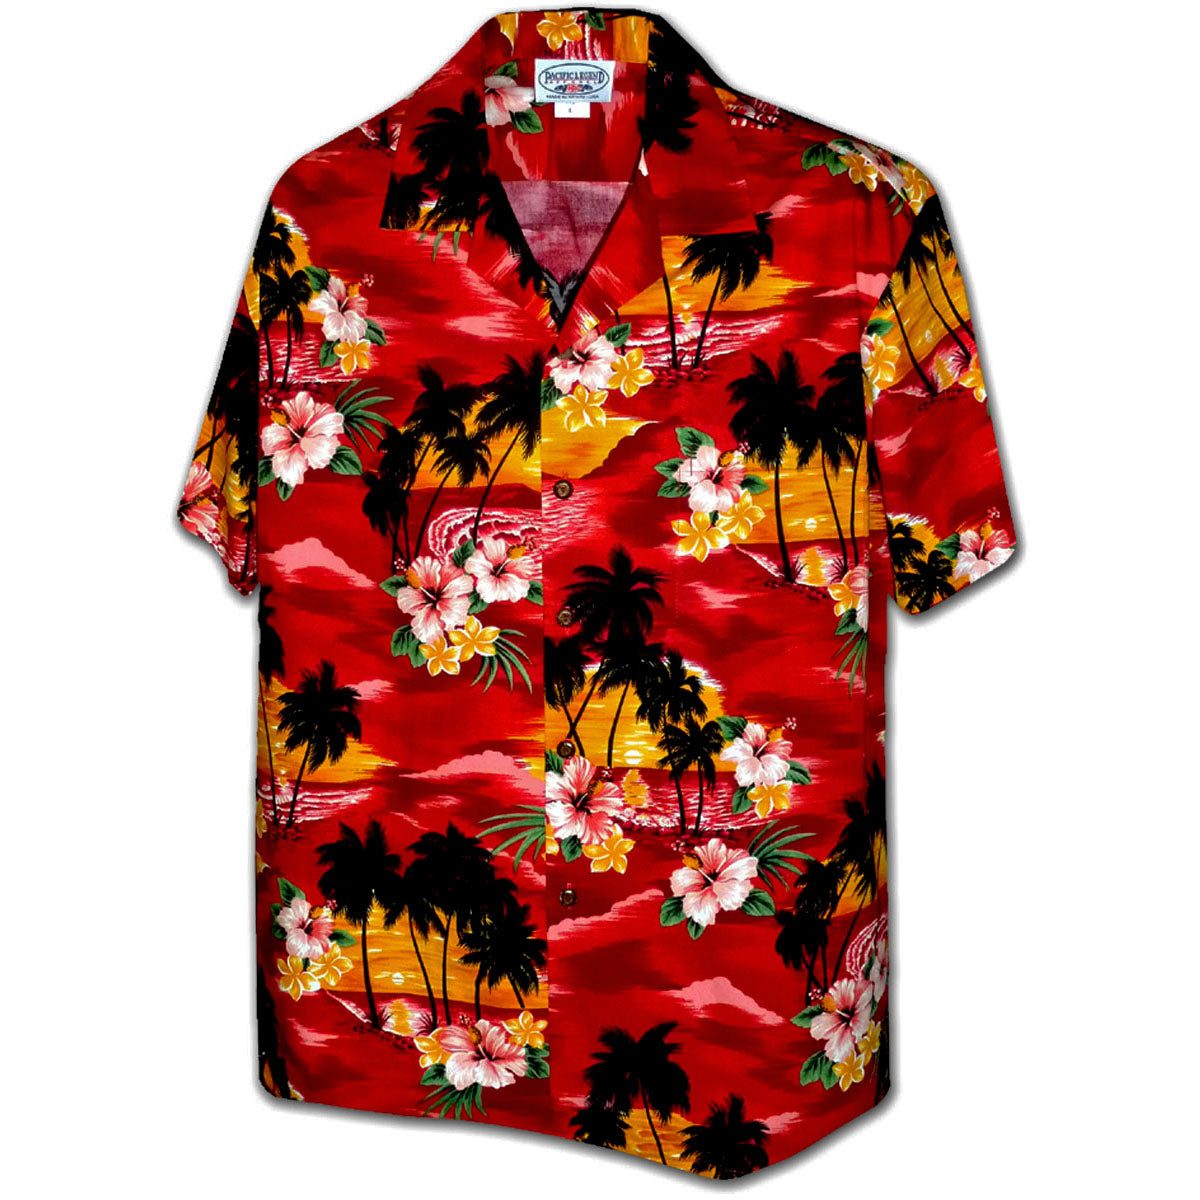 Searing Sunset Red Hawaiian Shirt